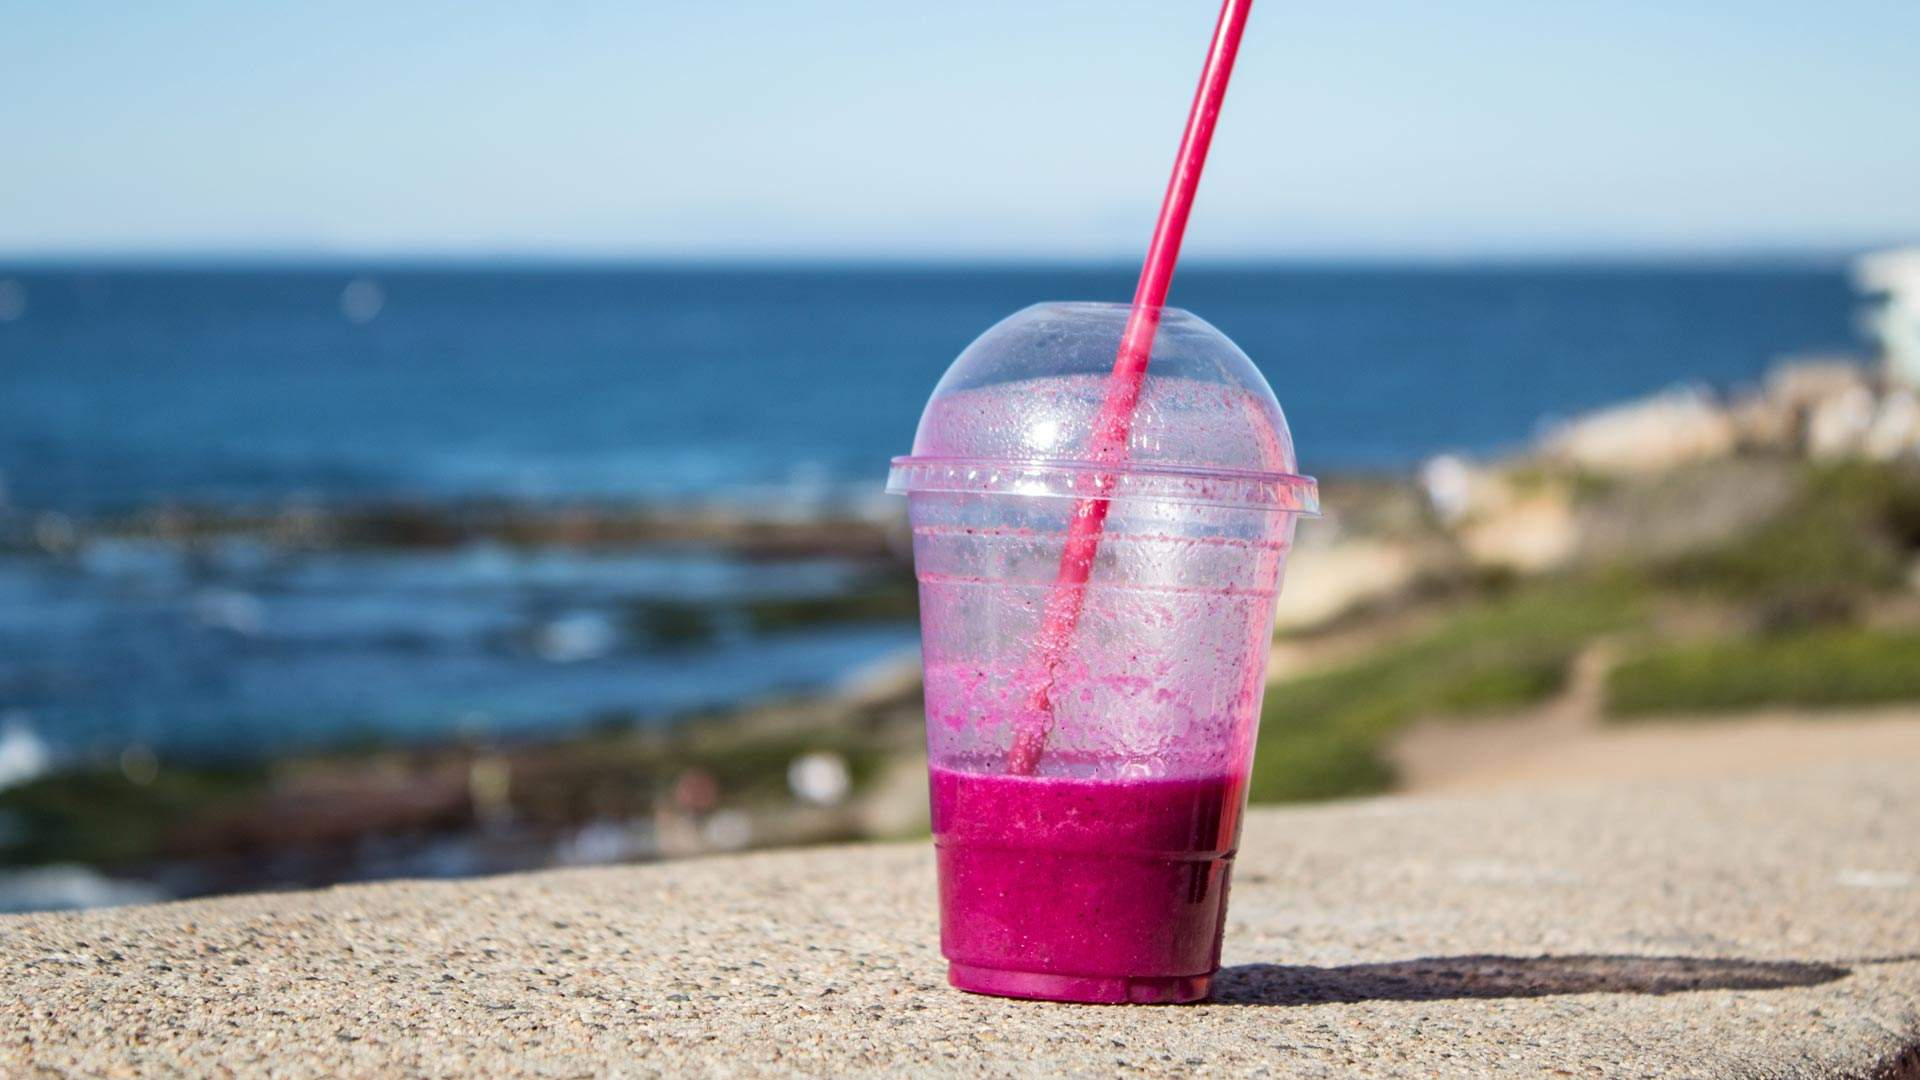 Queensland Could Soon Introduce a State-Wide Ban on Single-Use Plastics